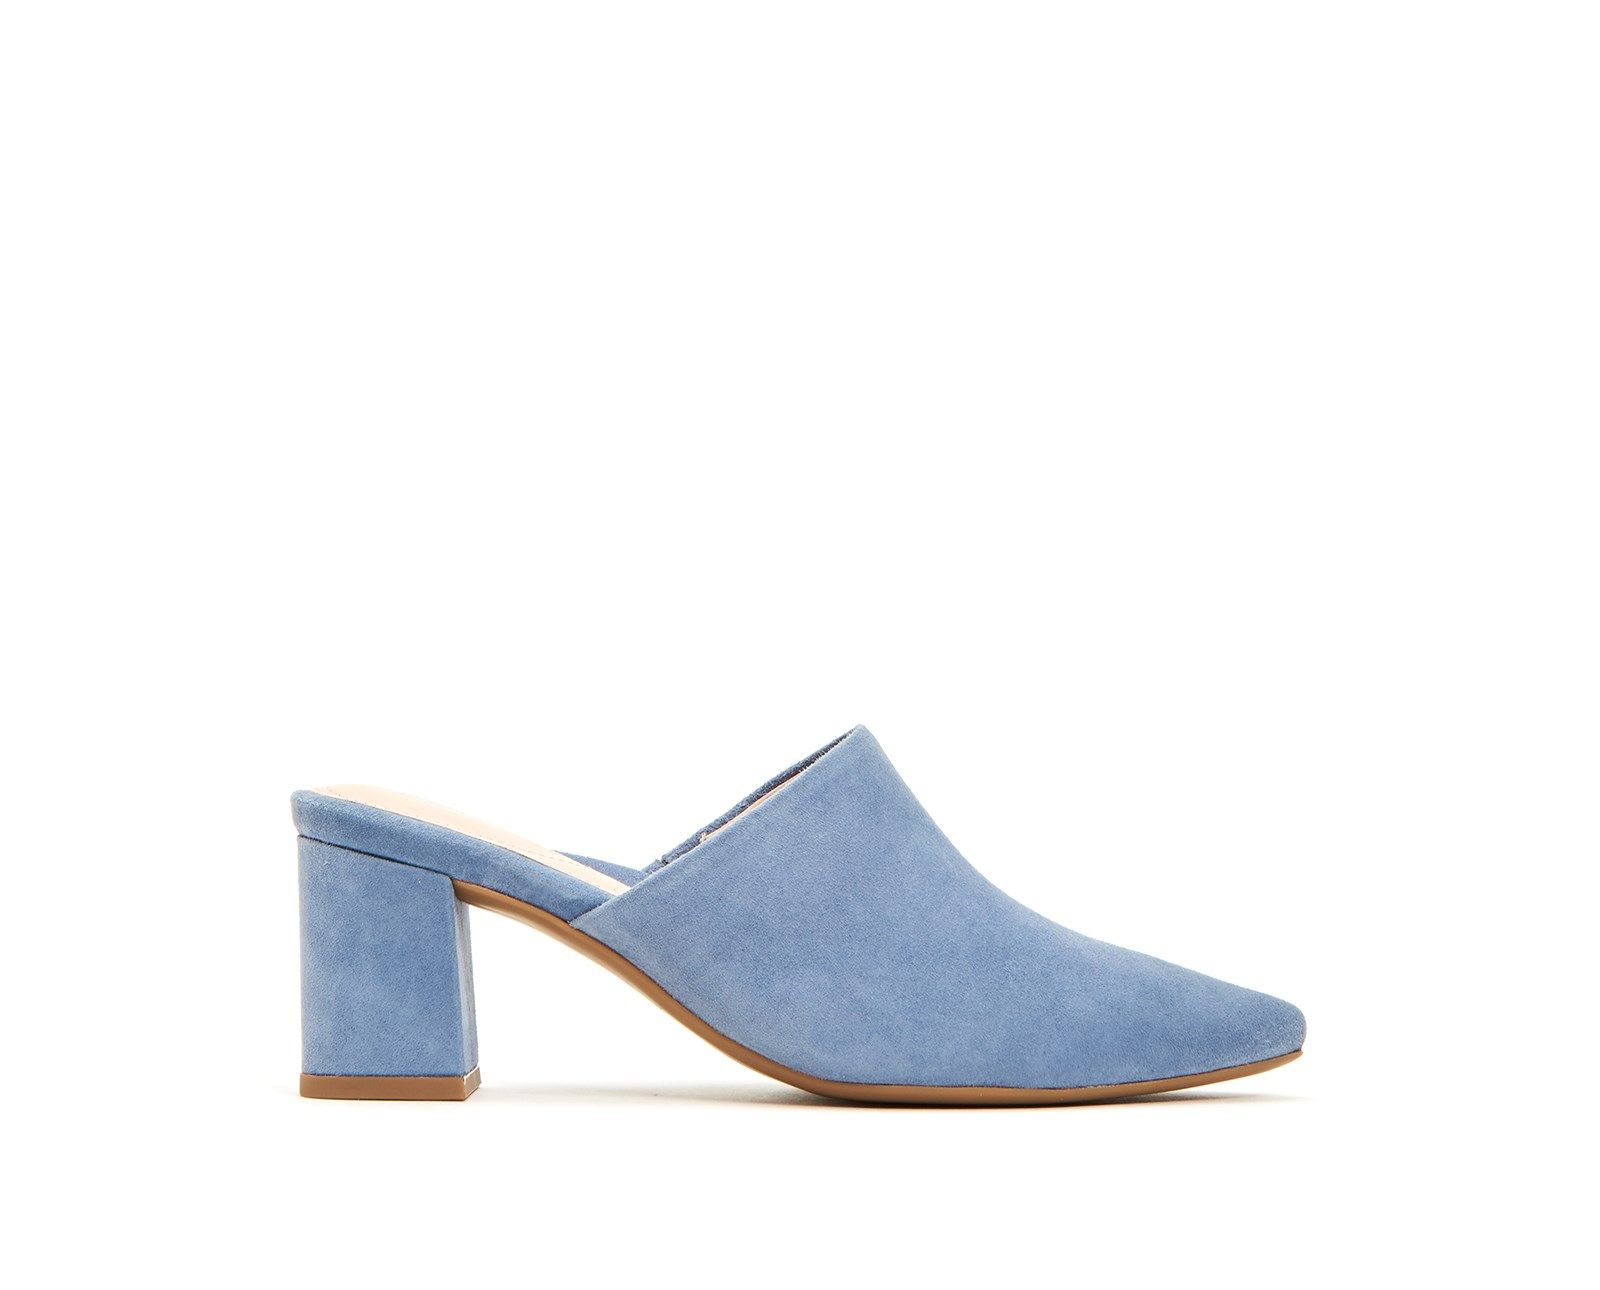 Madisson Taryn Rose tarynrose.com $42.00 SHOP NOW With a shock absorbing foam foot bed, you can count on these blue suede mules to last from 9am to 5pm and beyond.